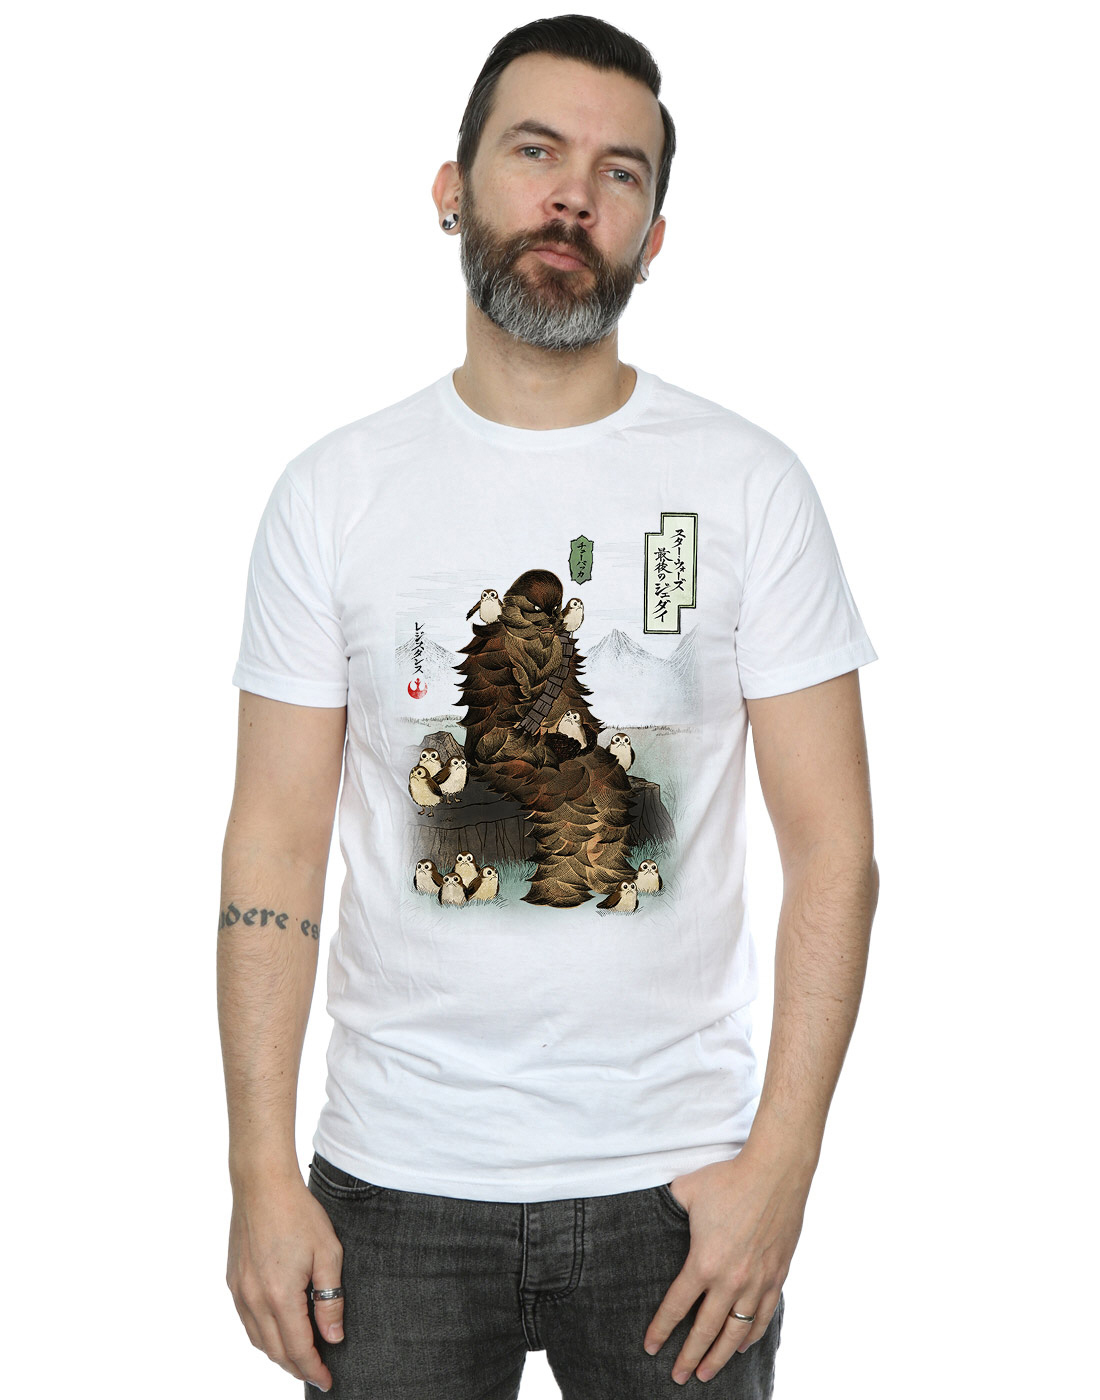 Star-Wars-Men-039-s-The-Last-Jedi-Japanese-Chewbacca-Porgs-T-Shirt